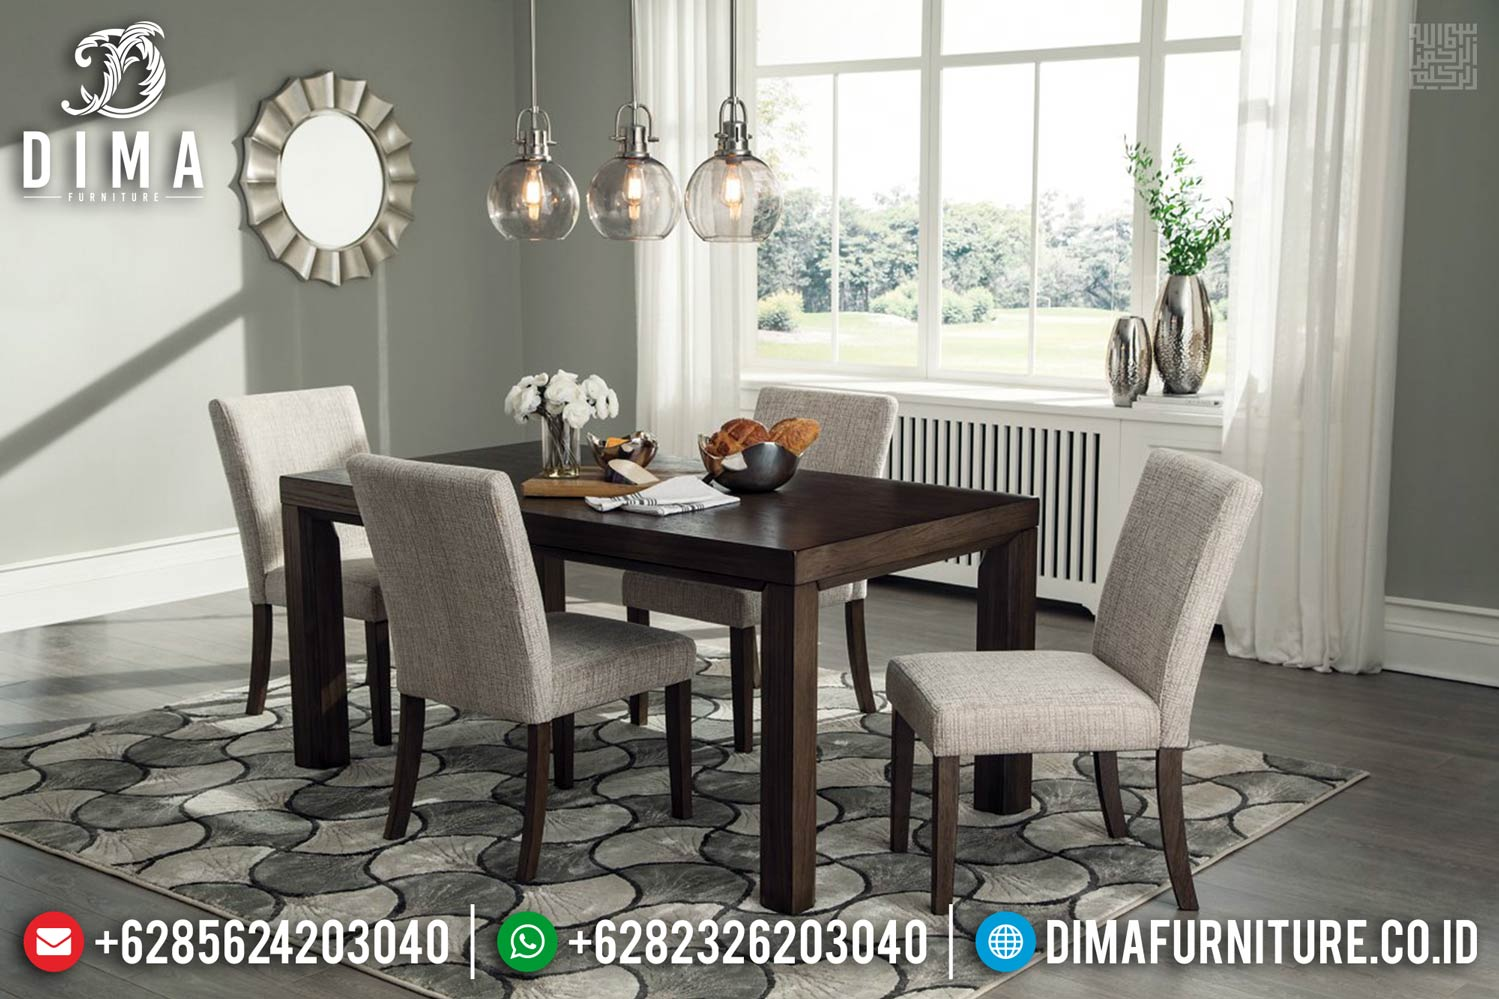 New Meja Makan Jati Minimalis Full Fabric Furniture Jepara Terlaris TTJ-0404